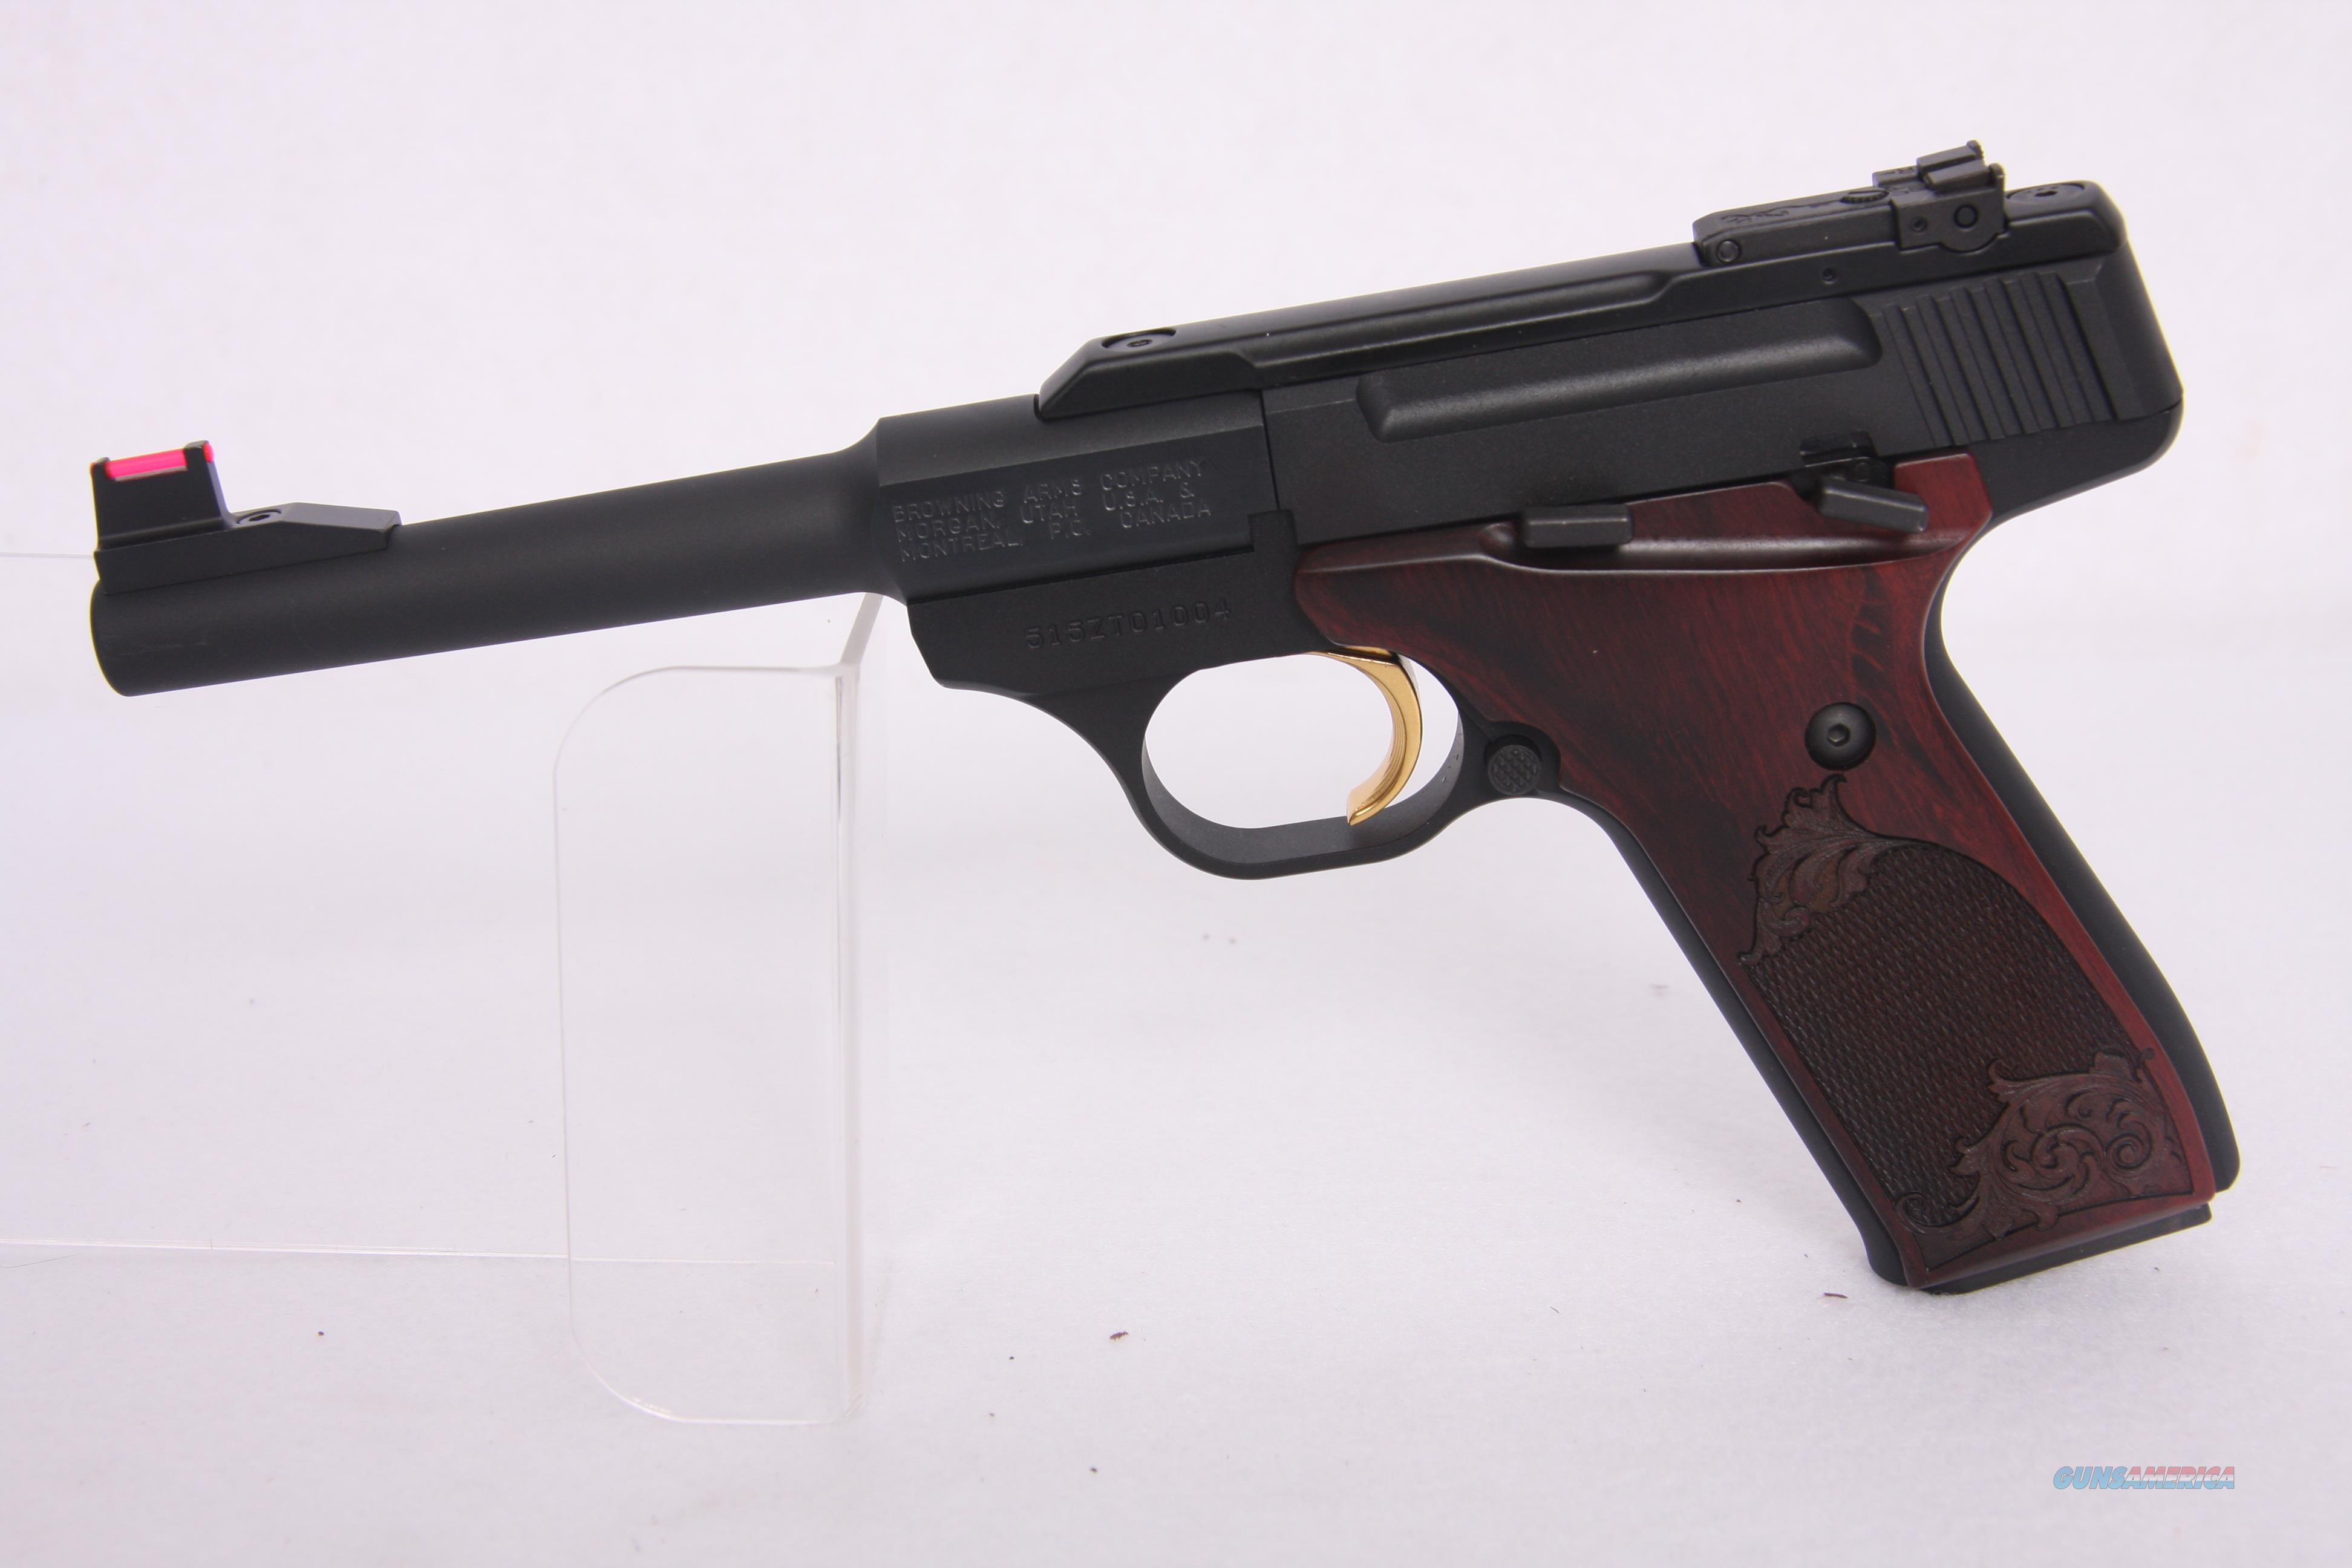 Browning Buck Mark Challenge Rosewood .22Lr 5.5in  Guns > Pistols > Browning Pistols > Buckmark